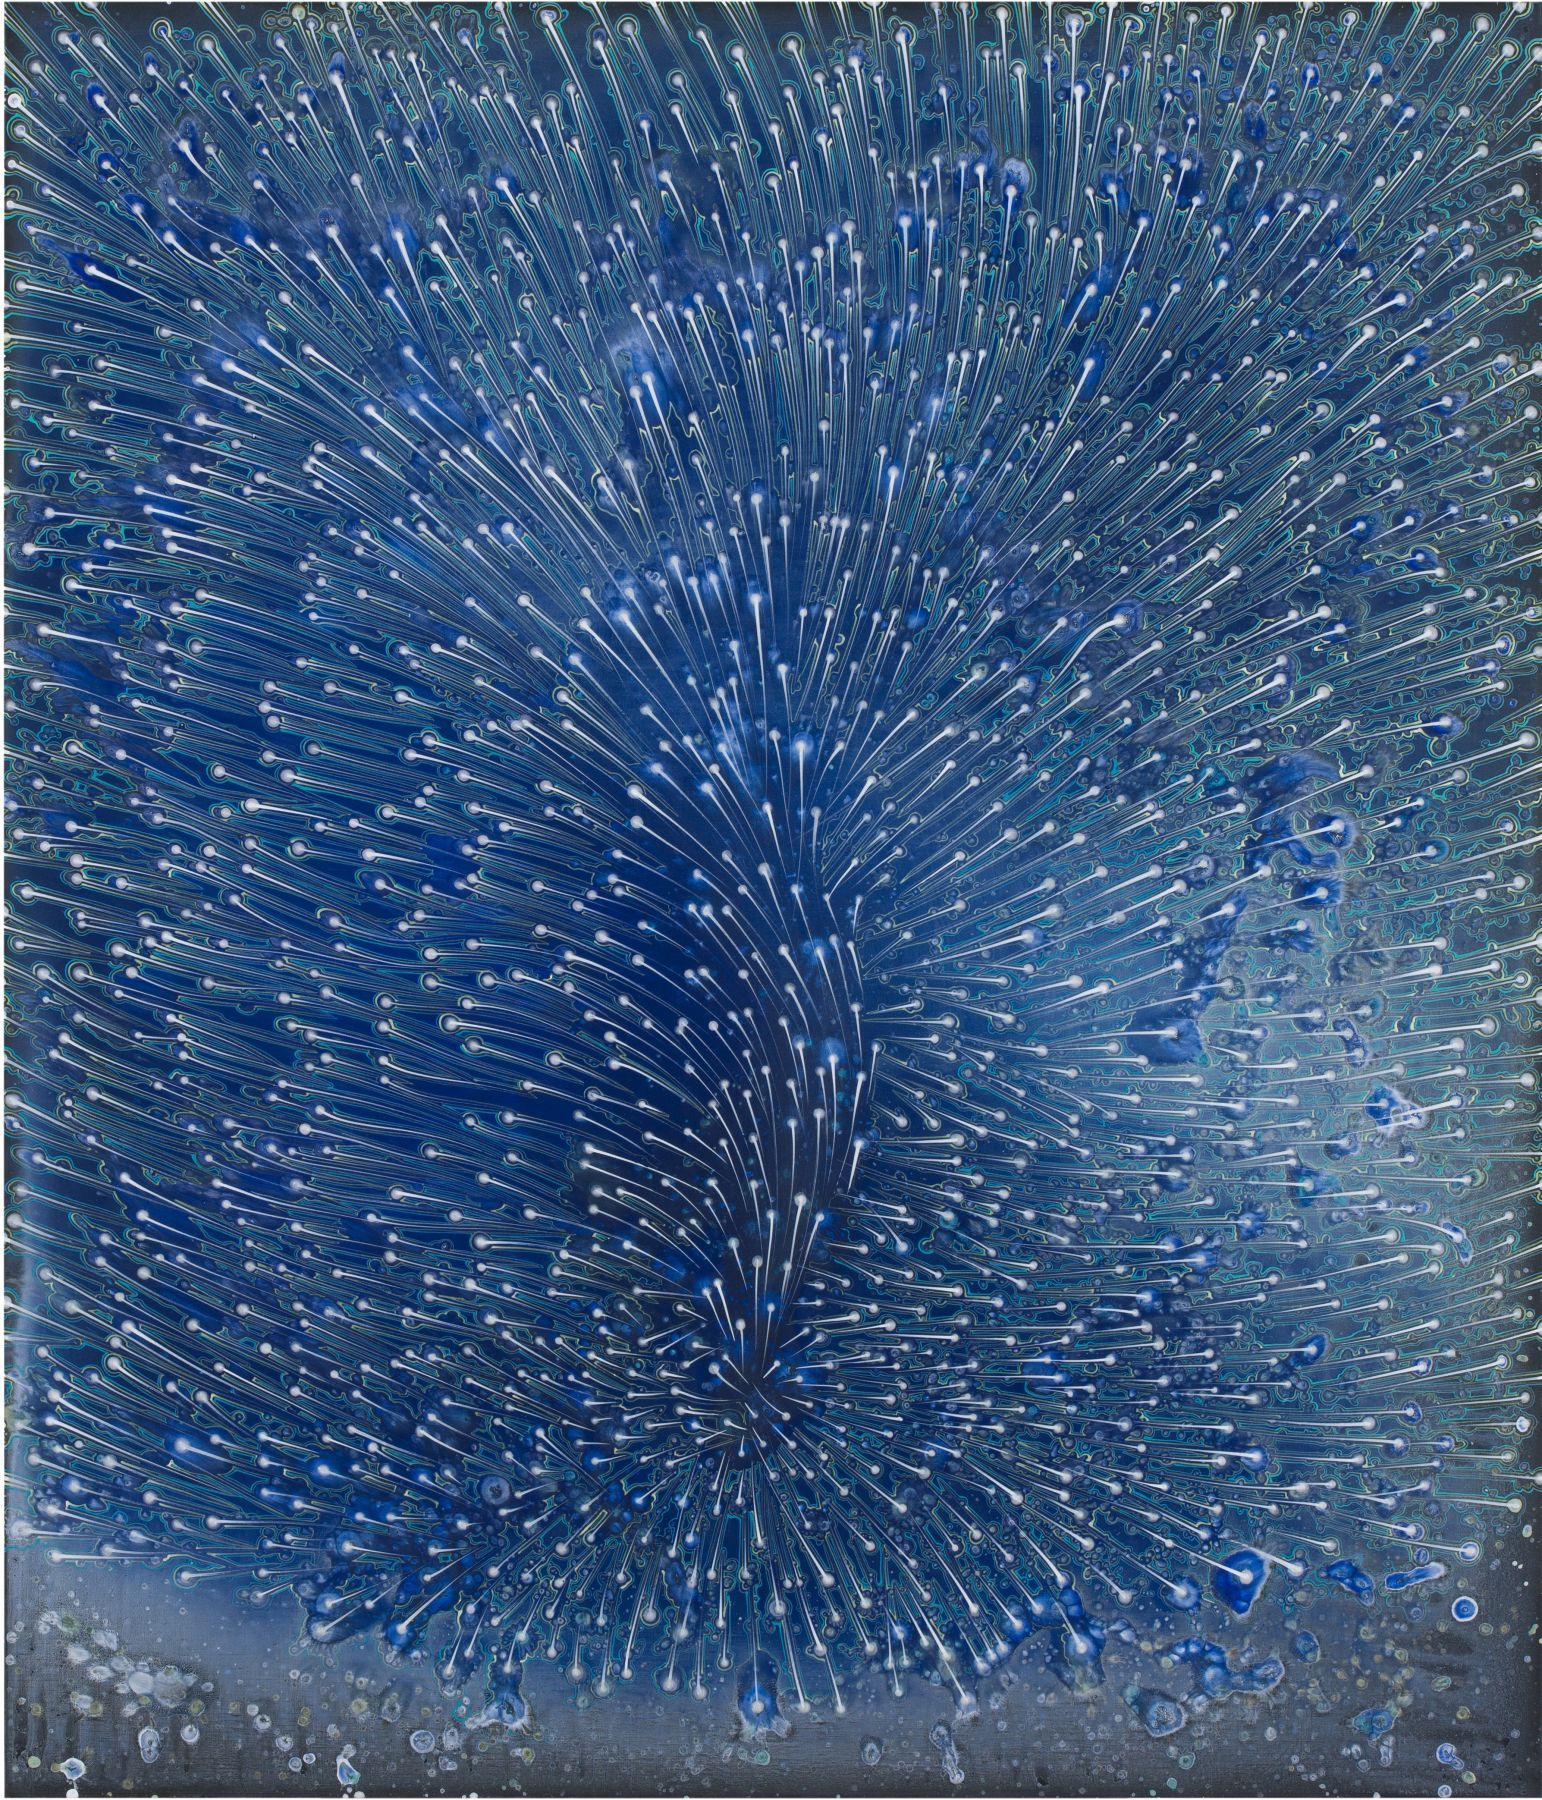 Blue Air, 2017, Acrylic on linen